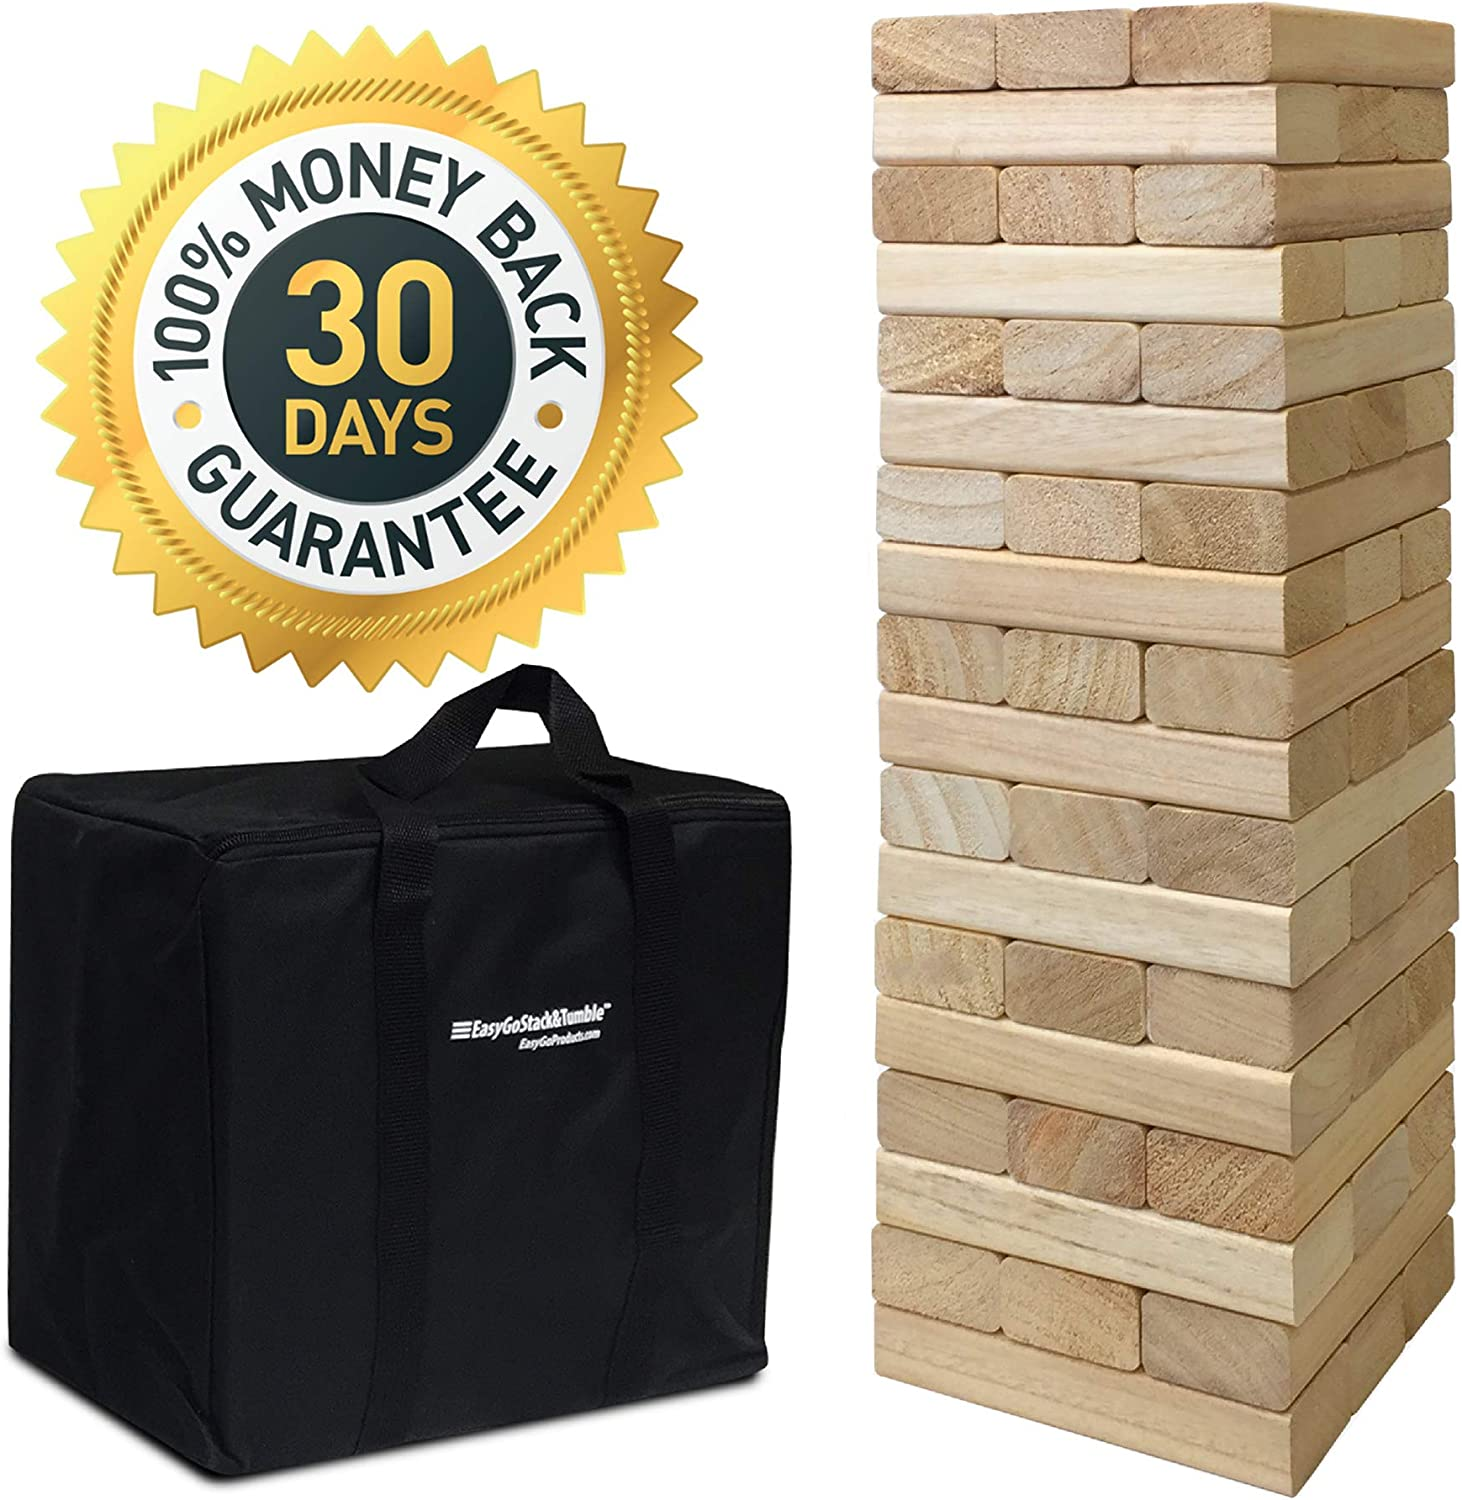 EasyGoProducts 54 Piece Large Wood Block Stack & Tumble Tower Toppling Blocks Game– Great for Game Nights for Kids, Adults & Family–Storage Bag